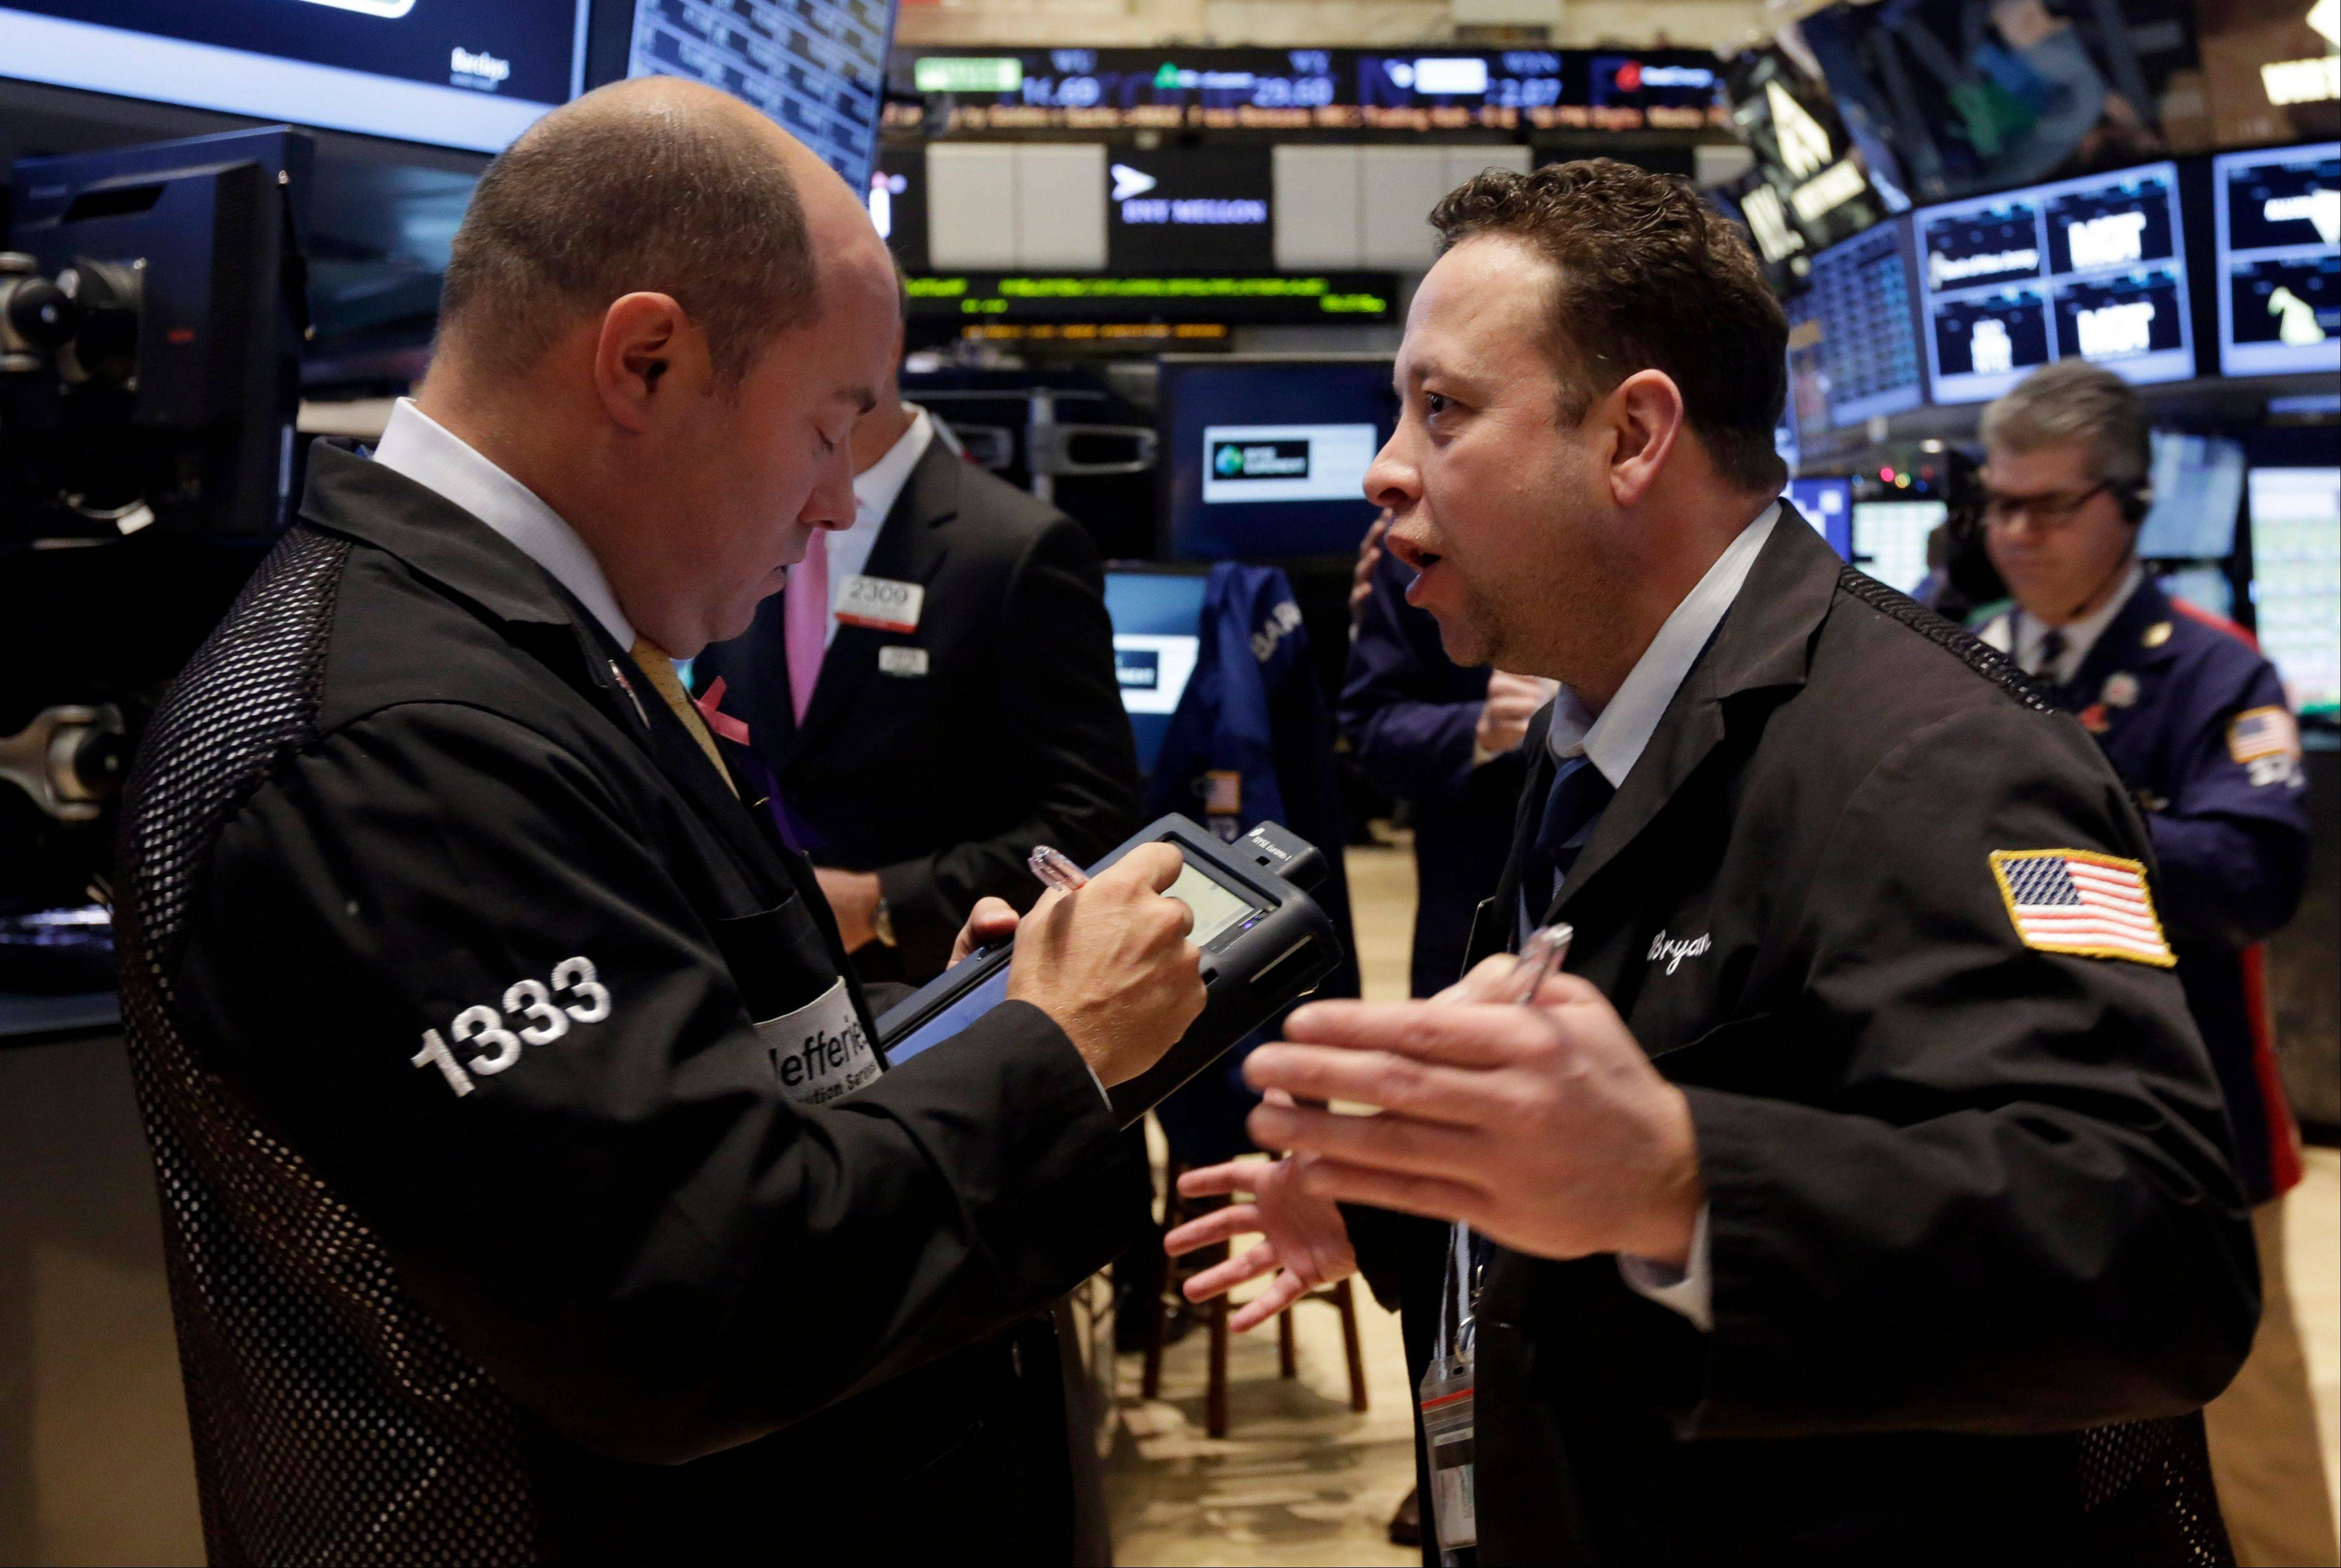 U.S. stocks fell a second day Wednesday, giving the Standard & Poor�s 500 Index its biggest back-to-back drop in two months, as a congressional budget accord fueled speculation the Federal Reserve could trim stimulus next week.